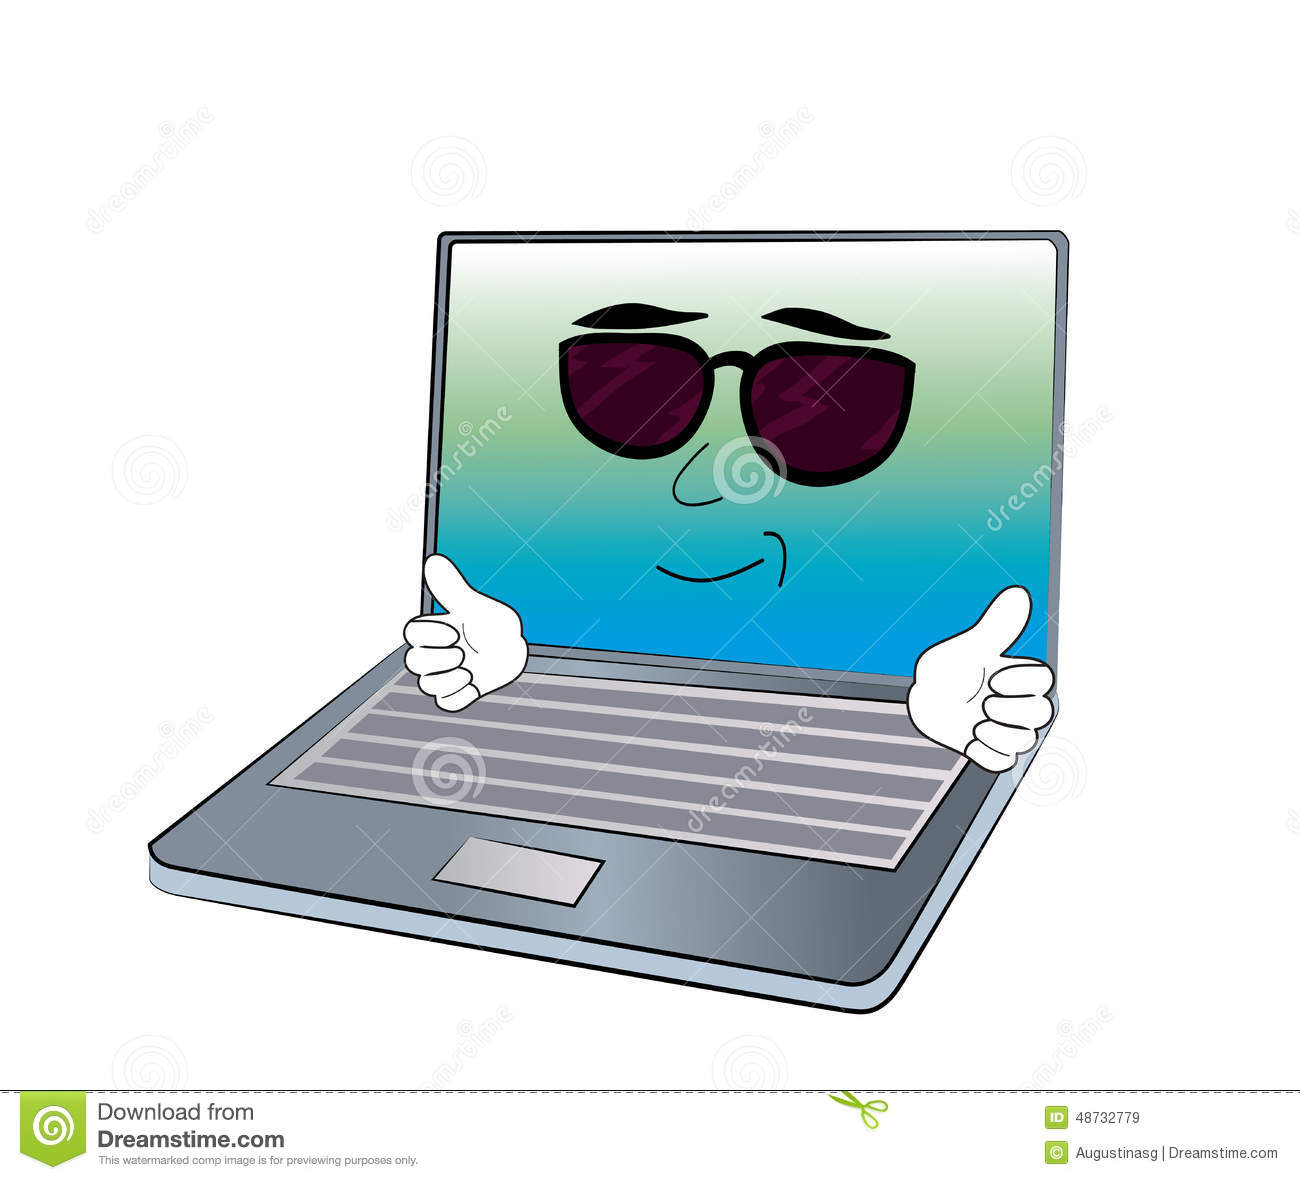 Cool Laptop Cartoon Stock Illustration - Image: 48732779